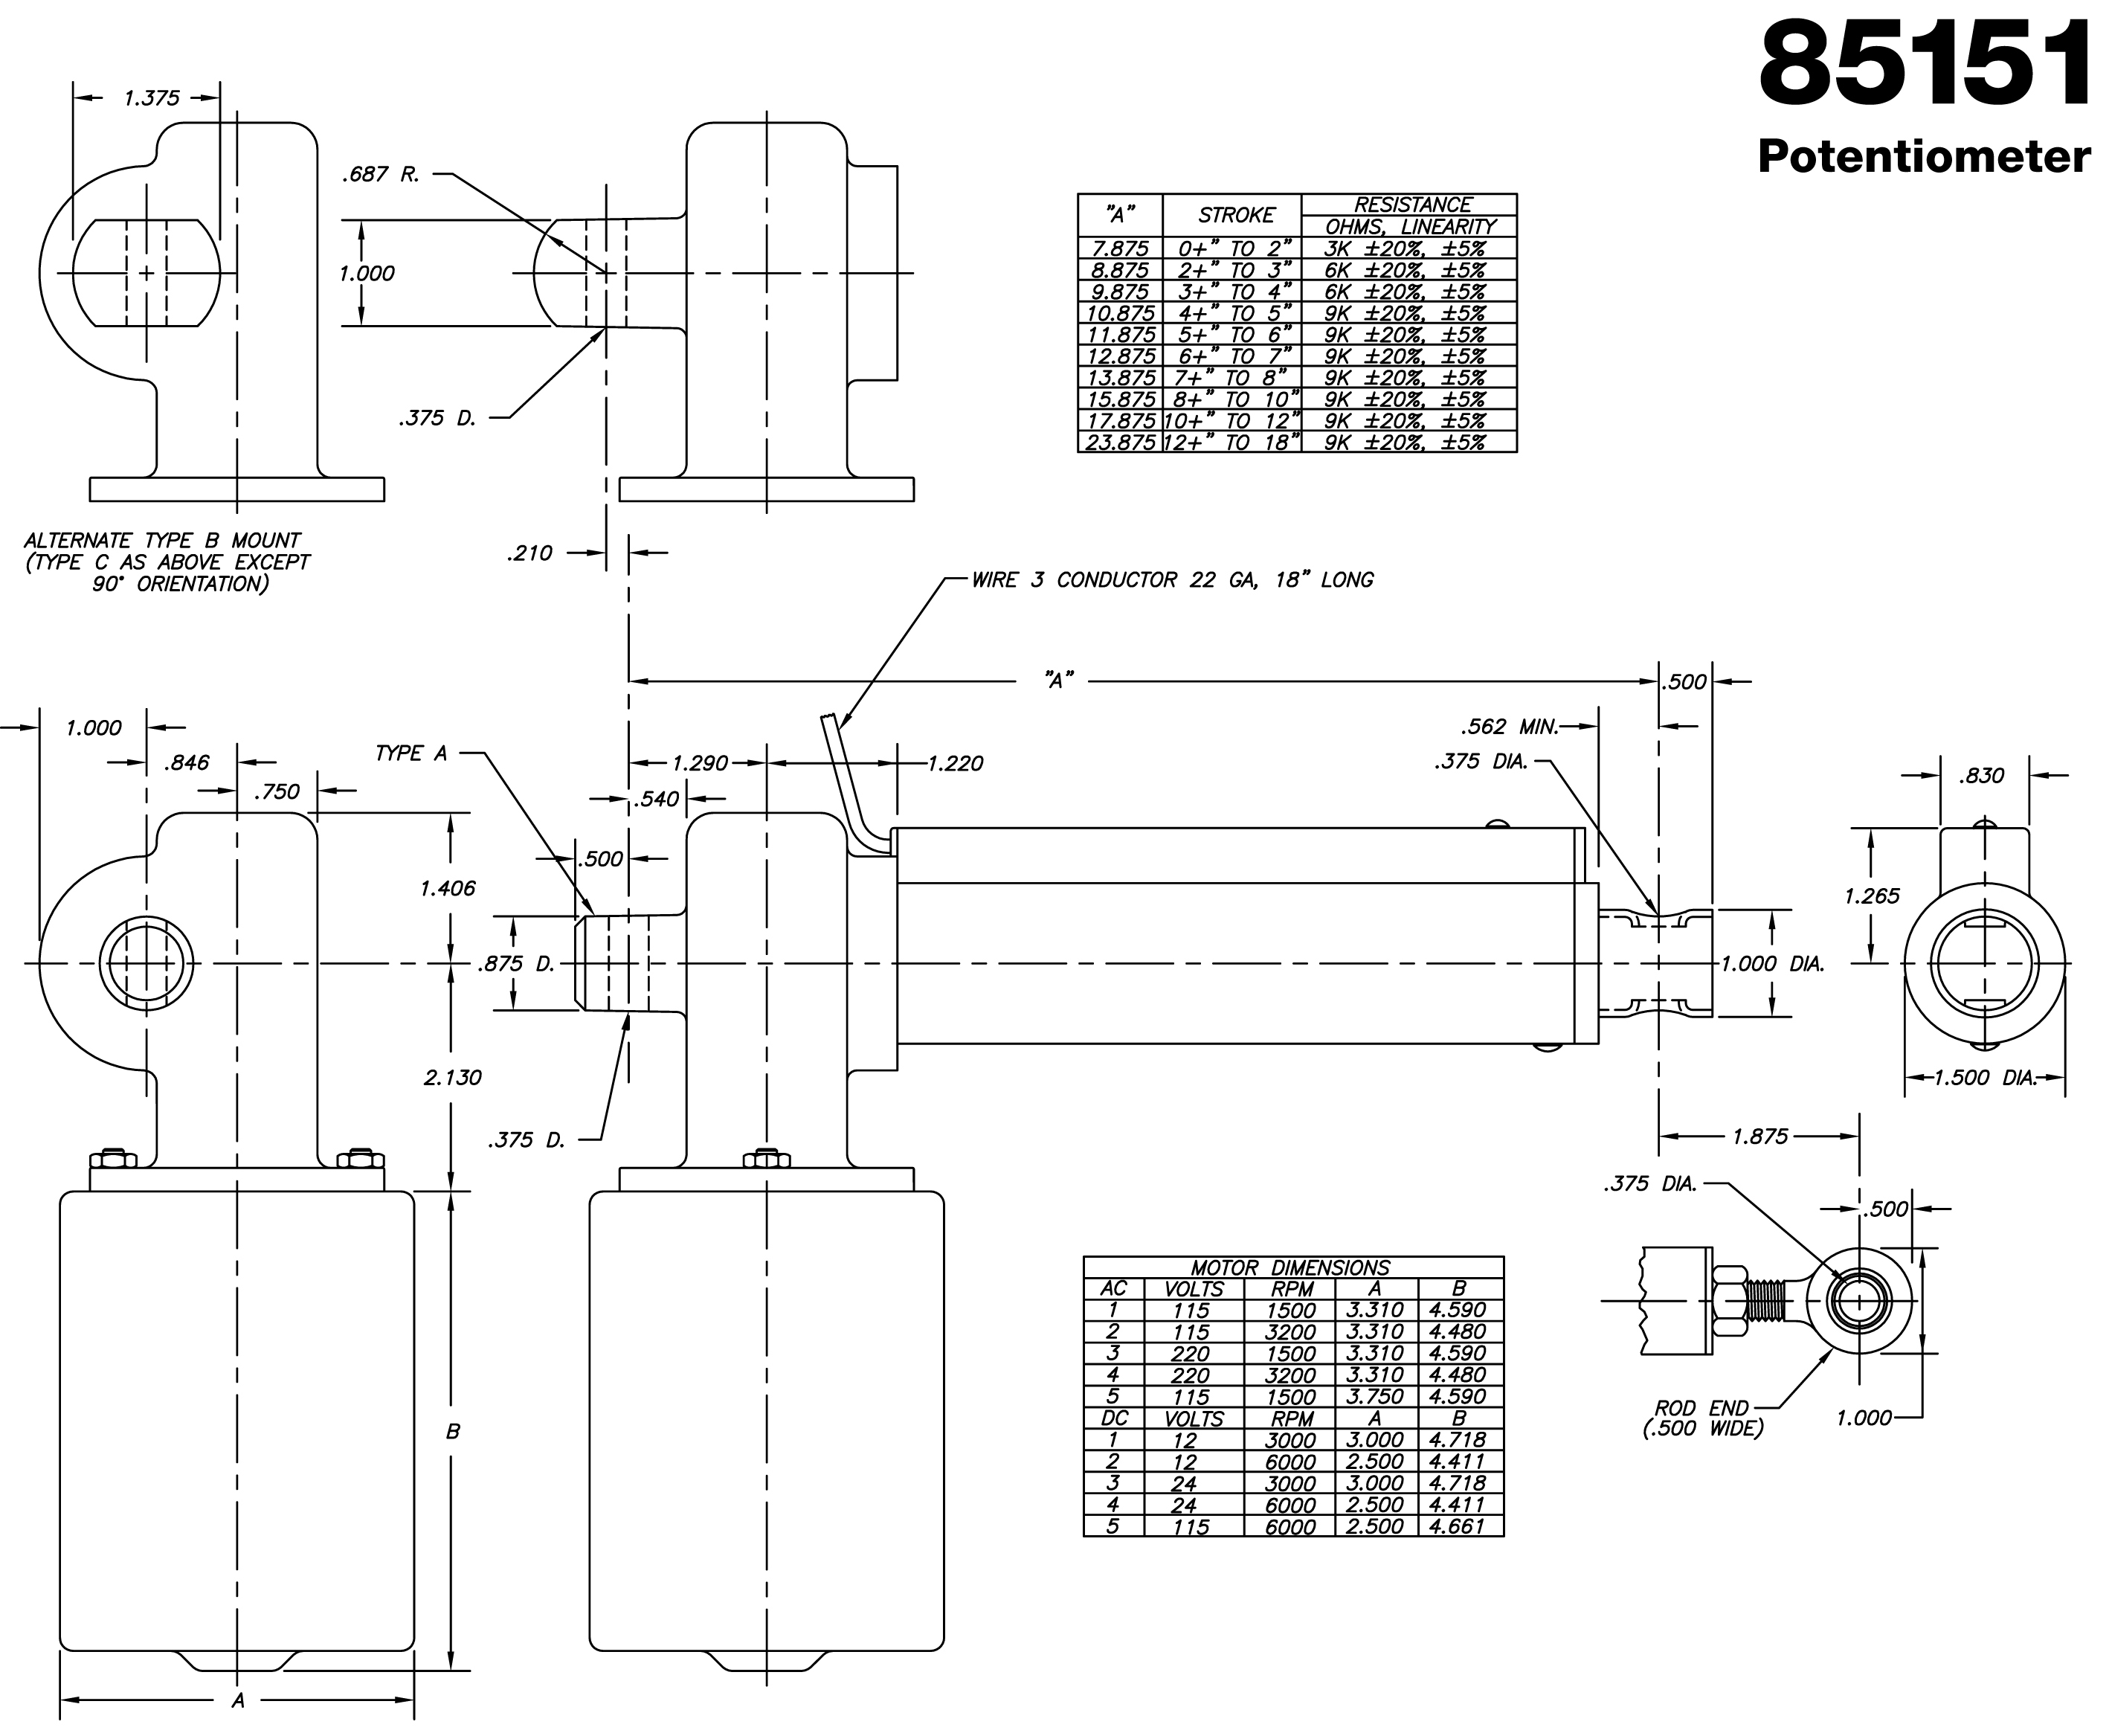 actuator wiring diagram sony cdx ca650x auma diagrams 2005 chevrolet hd diesel engine